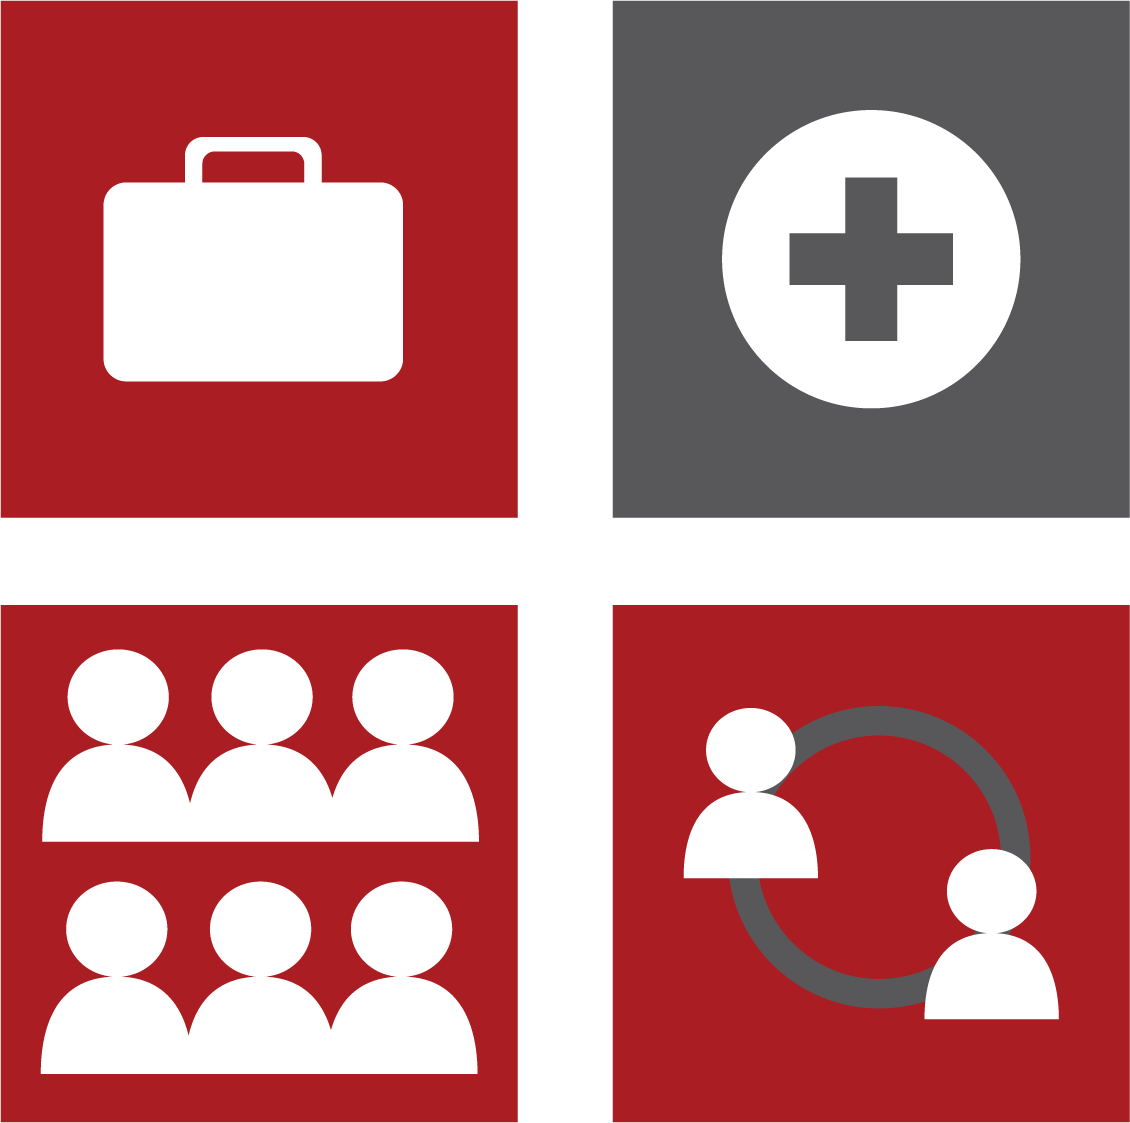 Collaboration symbols (4 squares with several people, some of which are communicating/networking)